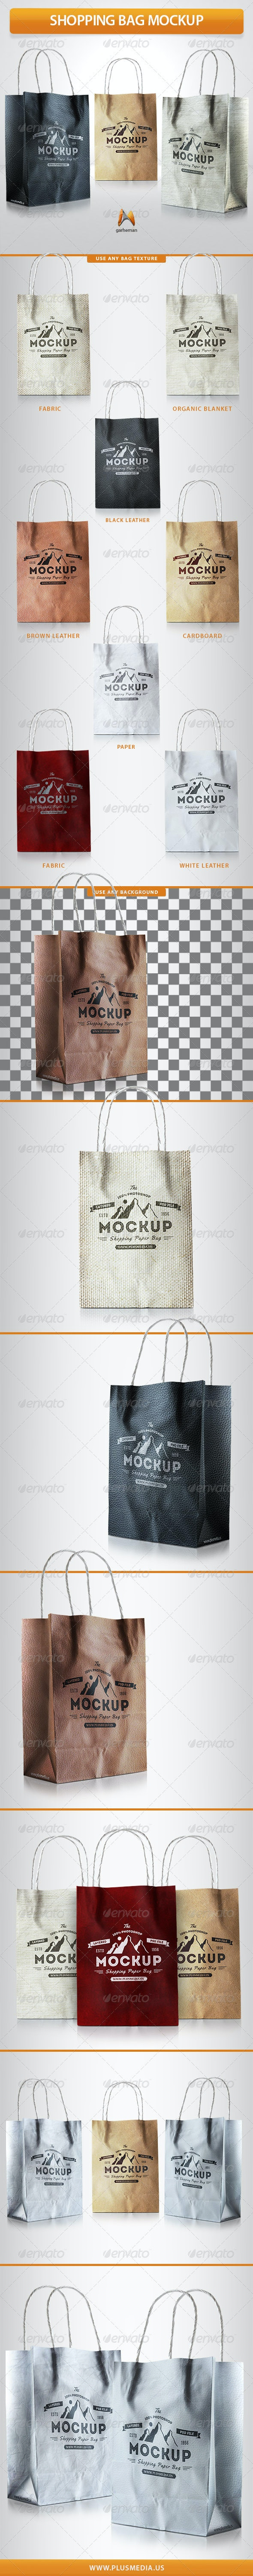 Shopping Bag Mockup - Print Product Mock-Ups